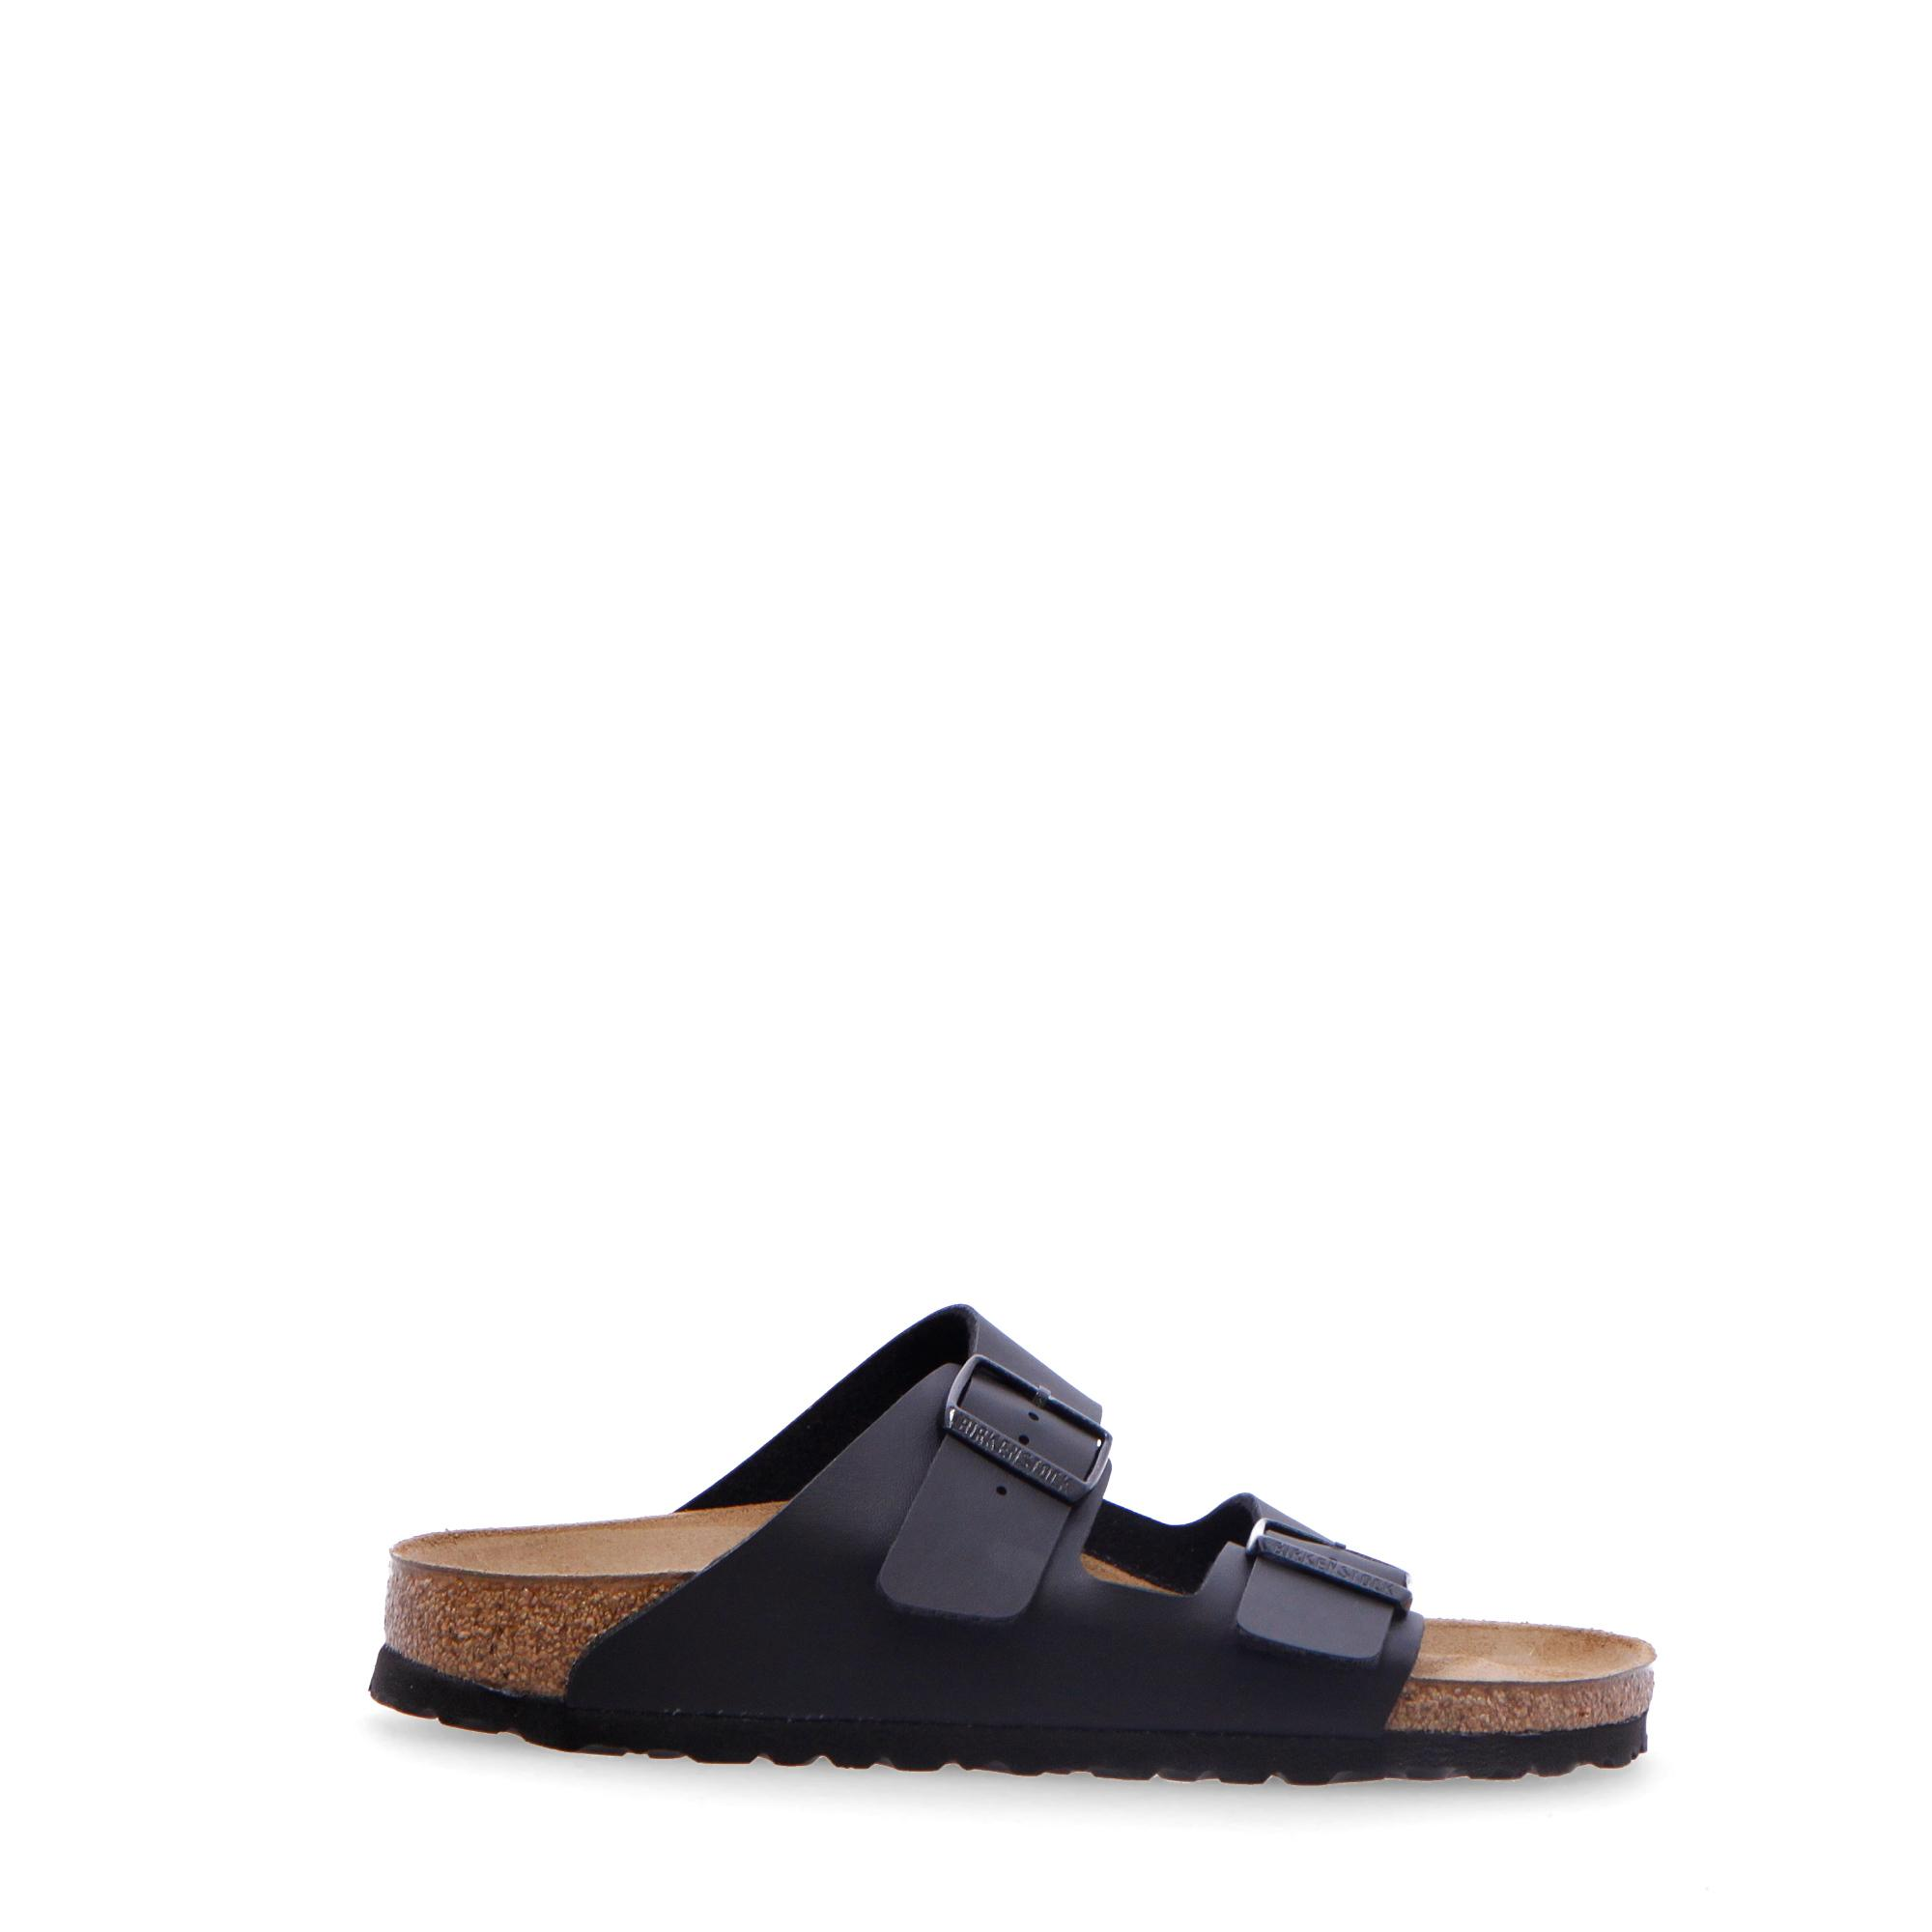 Birkenstock Arizona<br/> Black